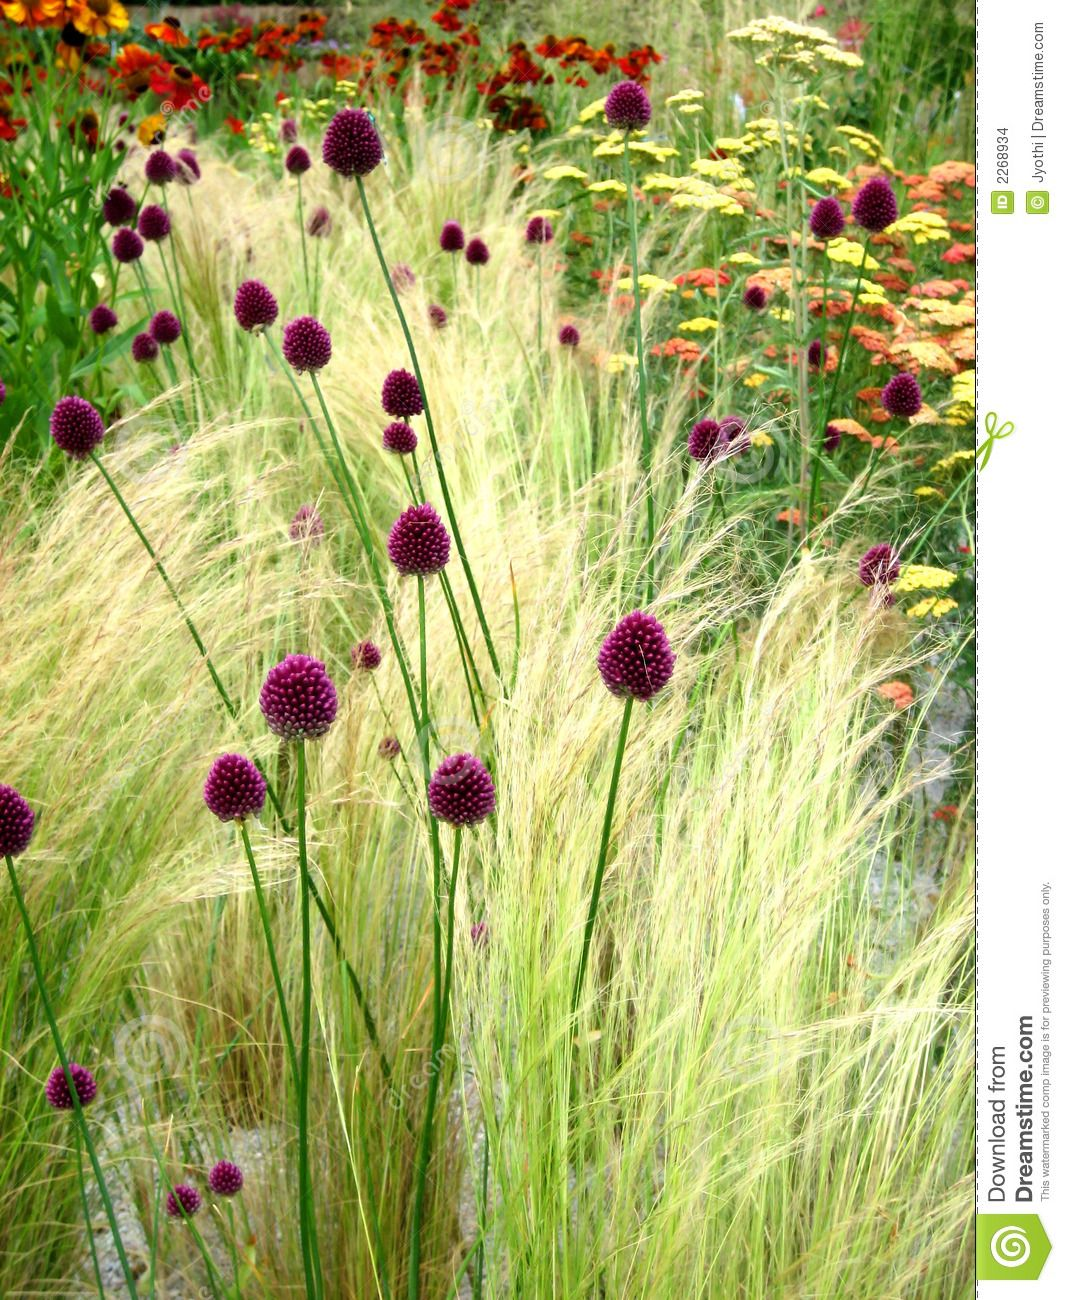 Drumstick allium interplanted with grasses gardens and for Wild grass landscaping